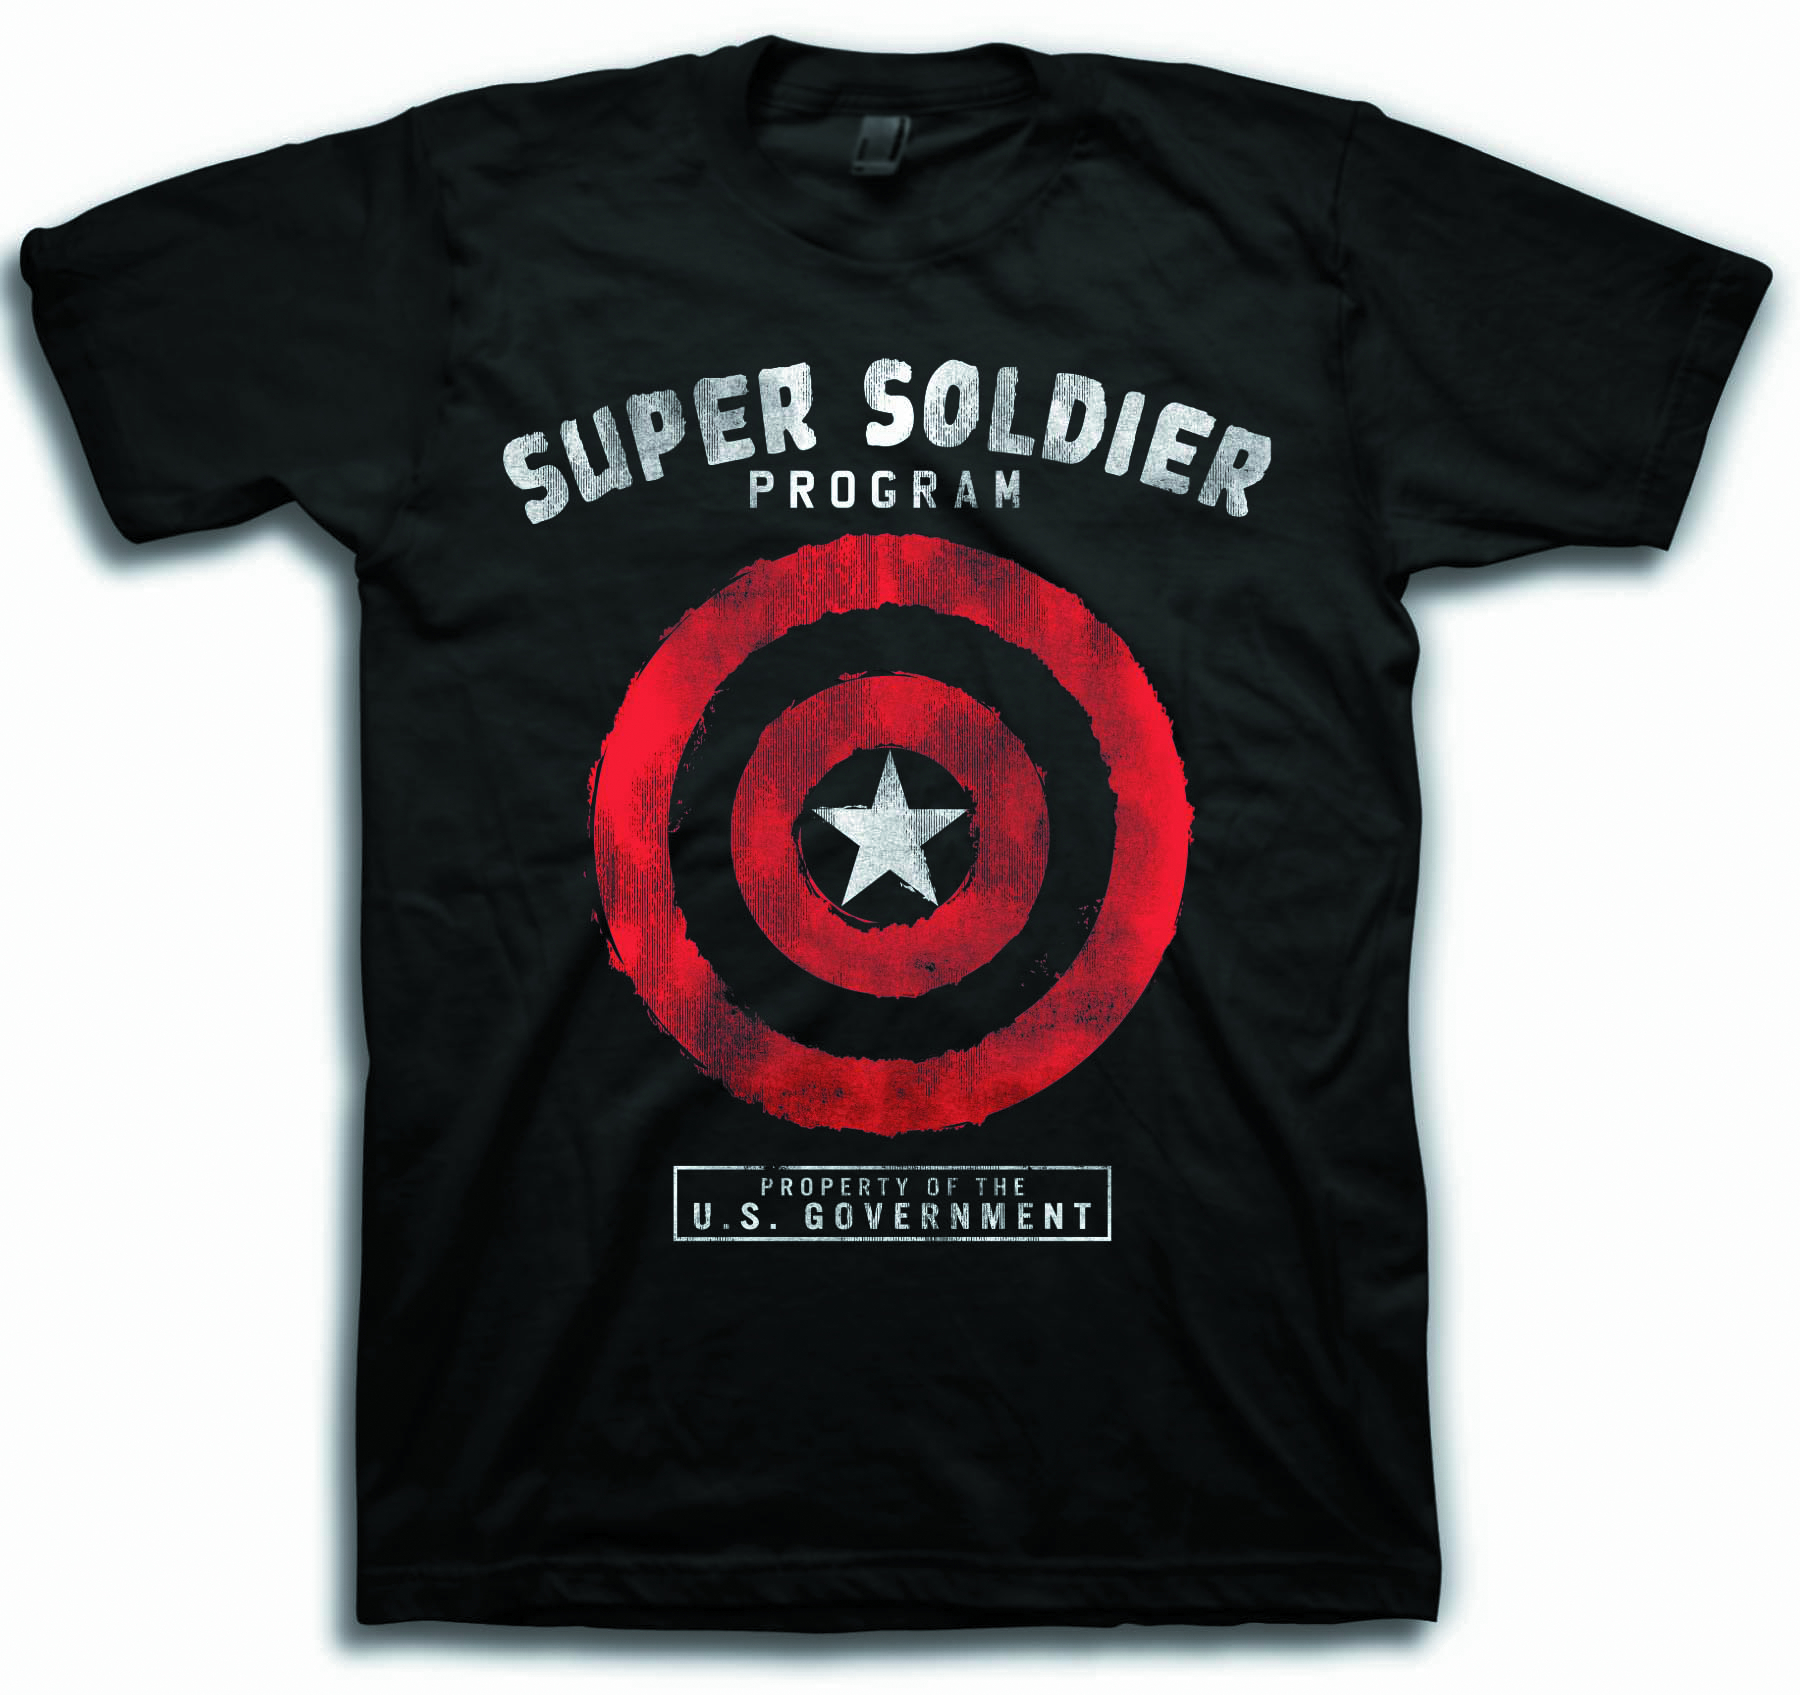 SUPER SOLDIER PROGRAM BLK T/S LG